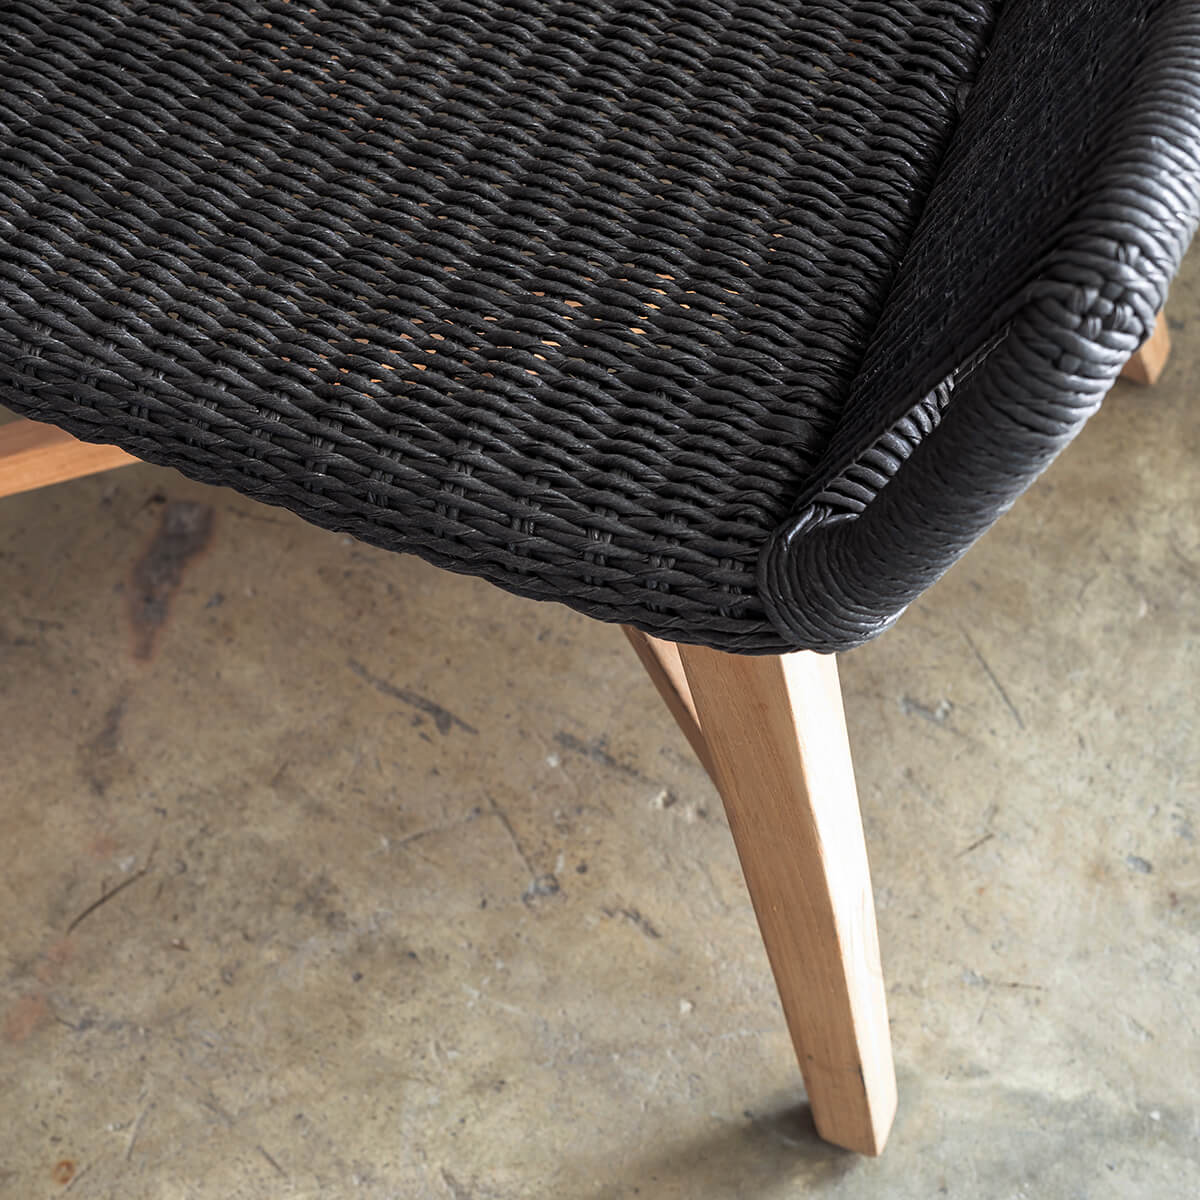 Inizia Woven Rattan Outdoor Chair Indoor Bar Chair Hamptons Bar Stool Living By Design